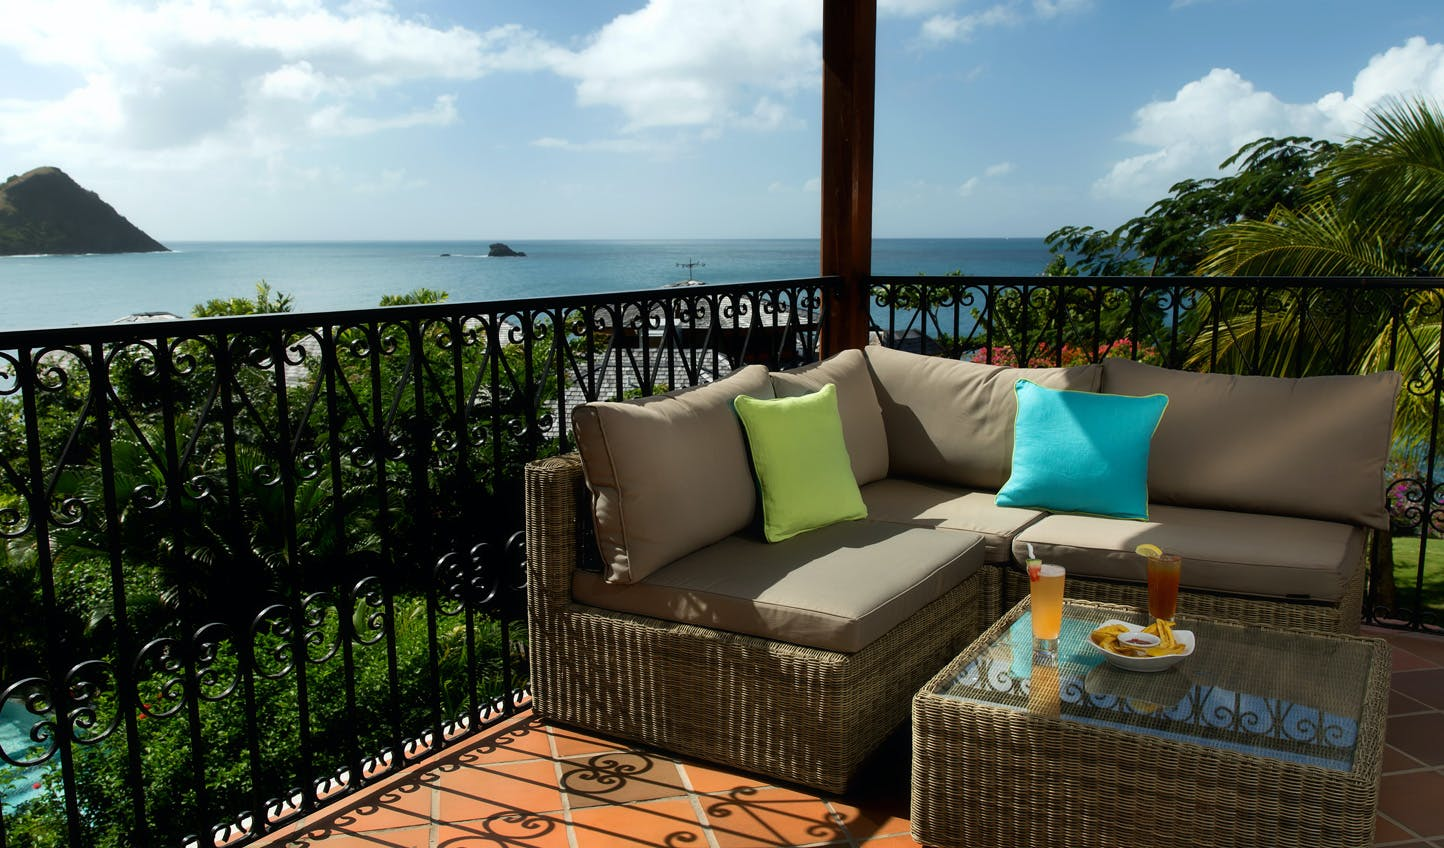 Luxury Hotels in St Lucia